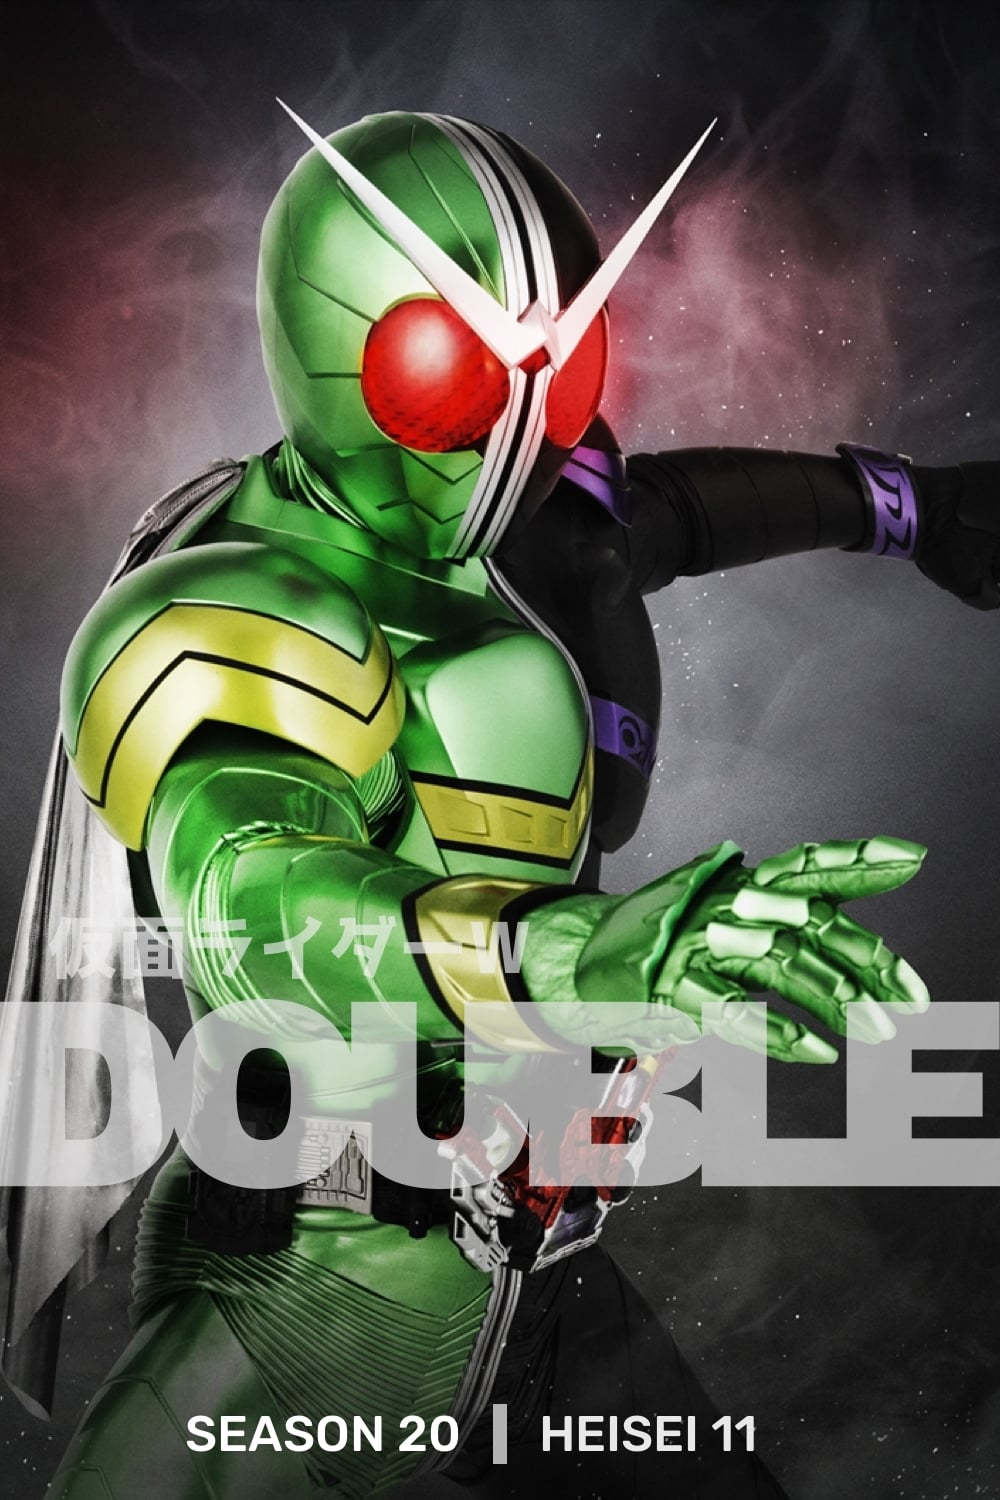 Kamen Rider - Season 21 Episode 35 : Dreams, Brother, Birth's Secret Season 20